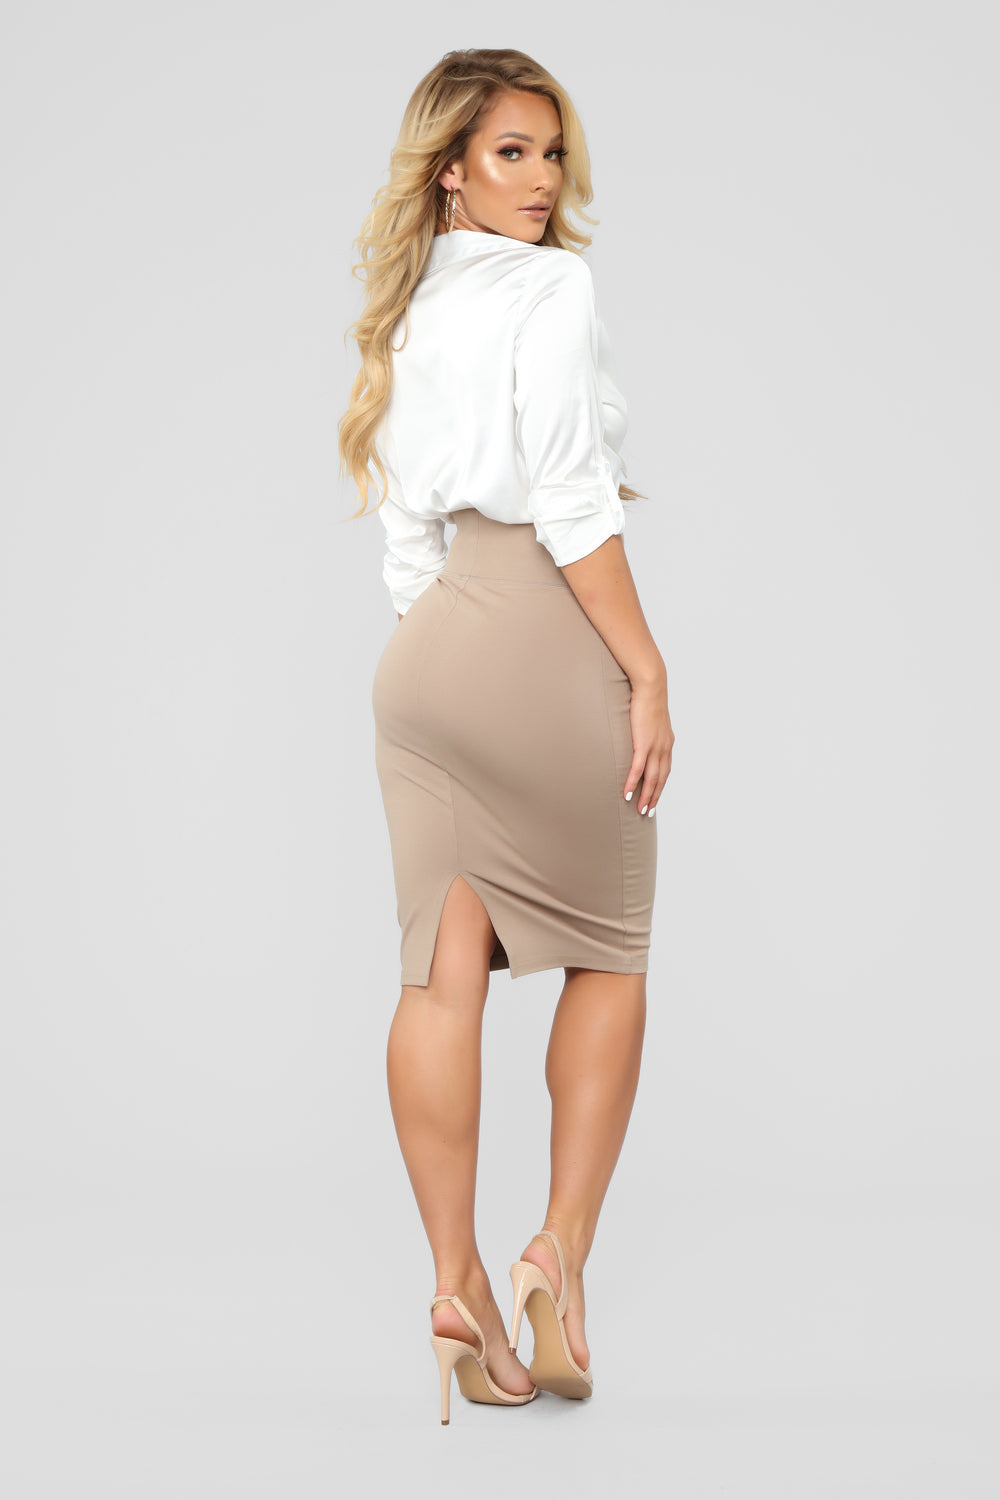 My Go To Mini Skirt - Mocha